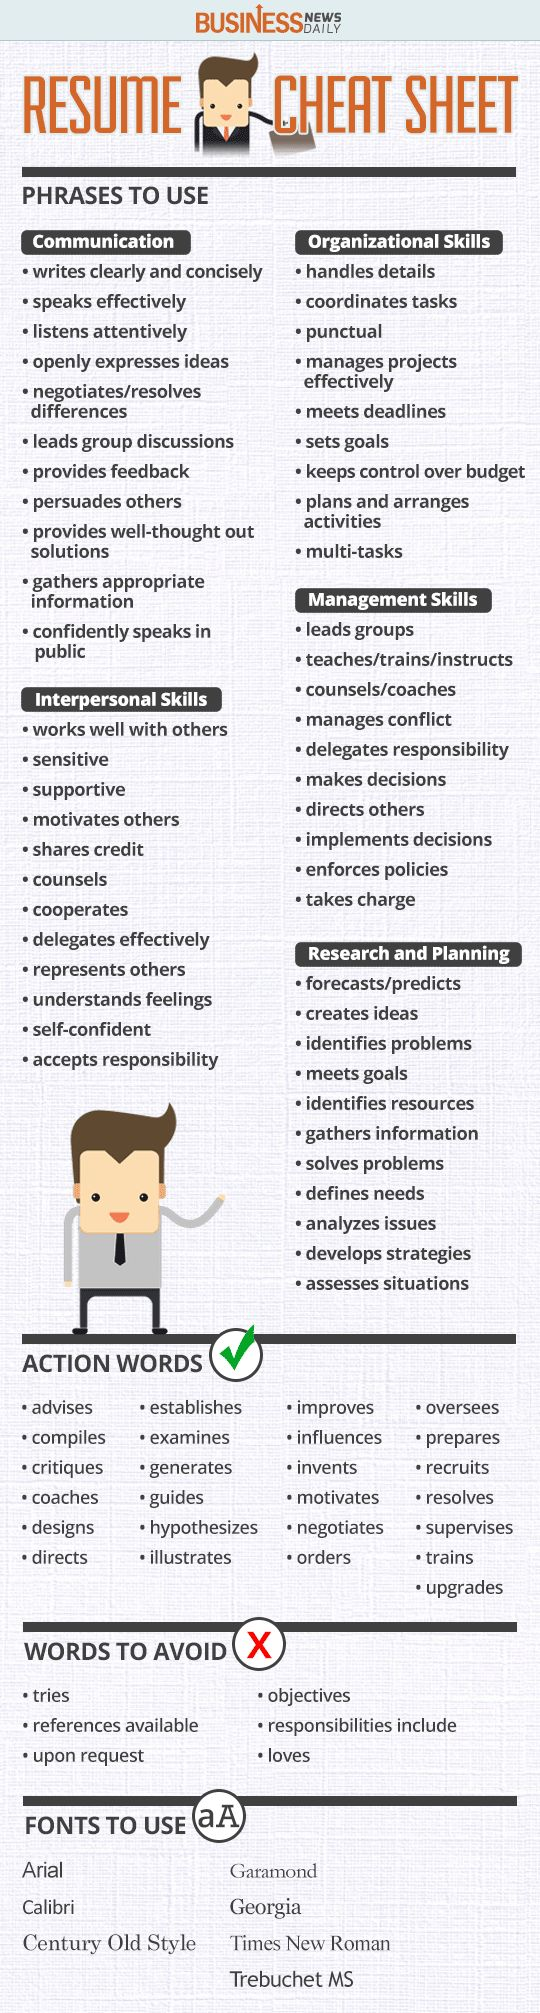 Opposenewapstandardsus  Marvelous  Ideas About Resume On Pinterest  Cv Format Resume Cv And  With Fetching Resume Cheat Sheet Infographic Andrews Almost Done With A Complete Unit On Employment Which With Captivating What To Add To A Resume Also Resume Taglines In Addition Job Summary Examples For Resumes And Csuf Resume Builder As Well As List Of Technical Skills For Resume Additionally Datastage Resume From Pinterestcom With Opposenewapstandardsus  Fetching  Ideas About Resume On Pinterest  Cv Format Resume Cv And  With Captivating Resume Cheat Sheet Infographic Andrews Almost Done With A Complete Unit On Employment Which And Marvelous What To Add To A Resume Also Resume Taglines In Addition Job Summary Examples For Resumes From Pinterestcom